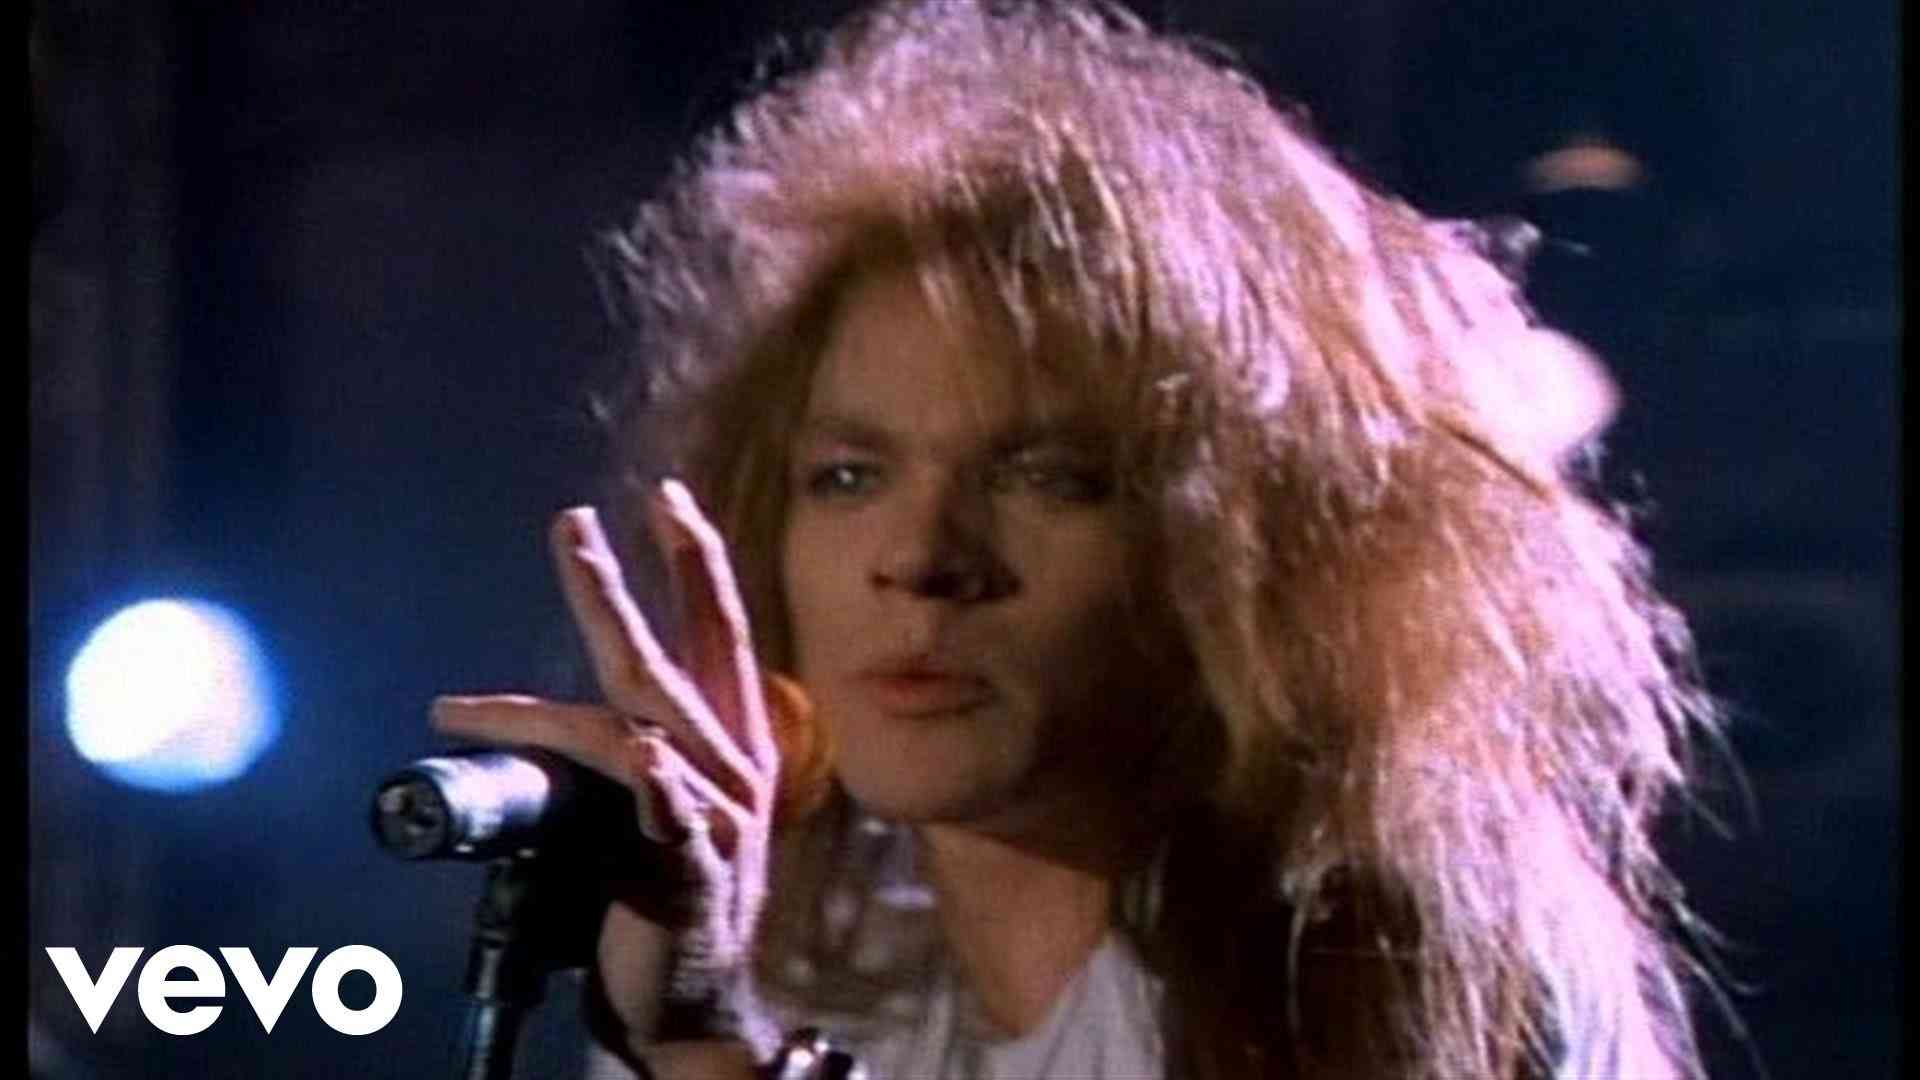 Guns N Roses - Welcome To The Jungle - YouTube